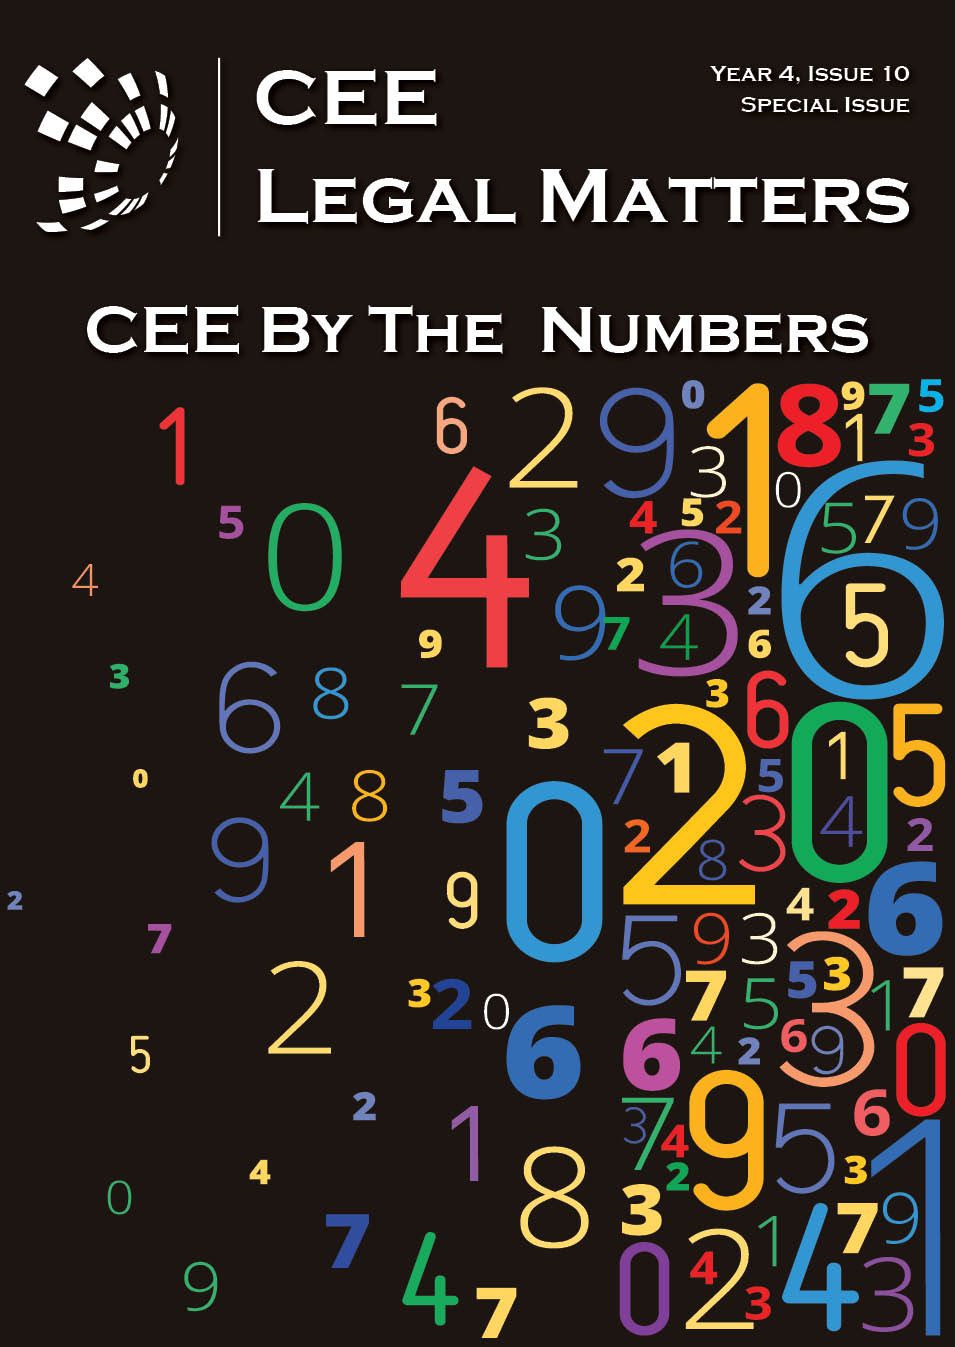 CEE By The Numbers 2017 (Issue 4.10)